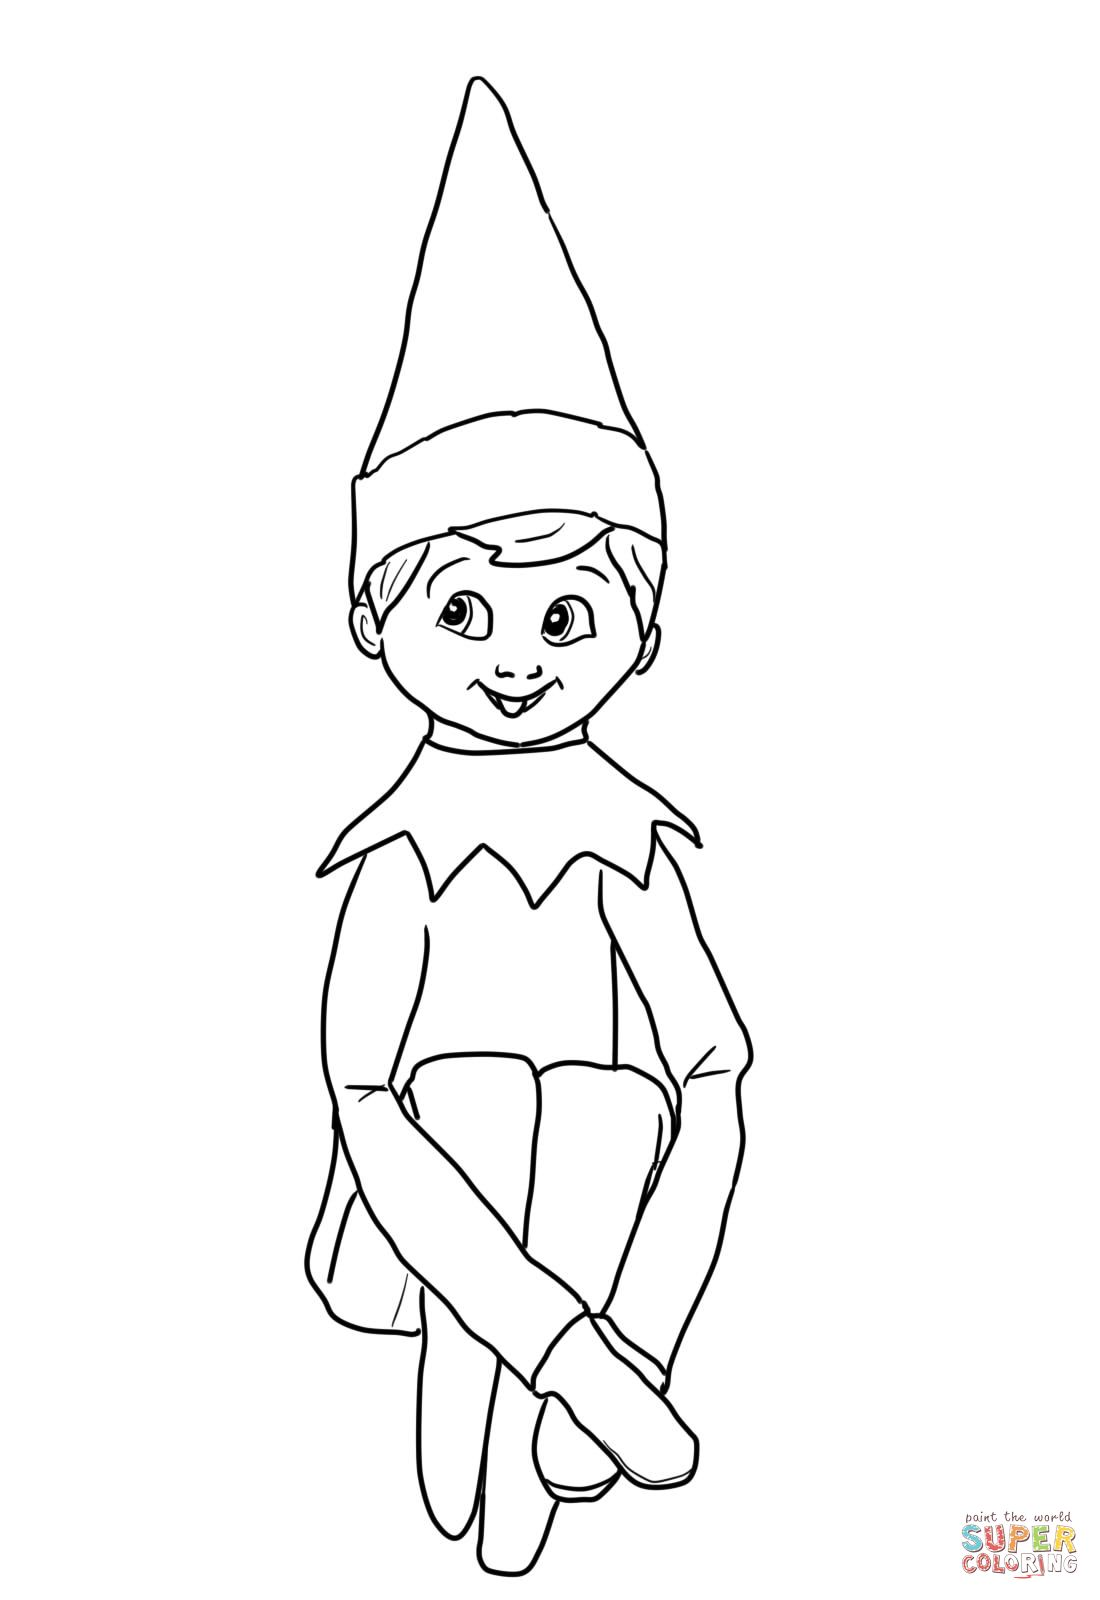 Girl Elf On the Shelf Coloring Pages | You might also be interested ...